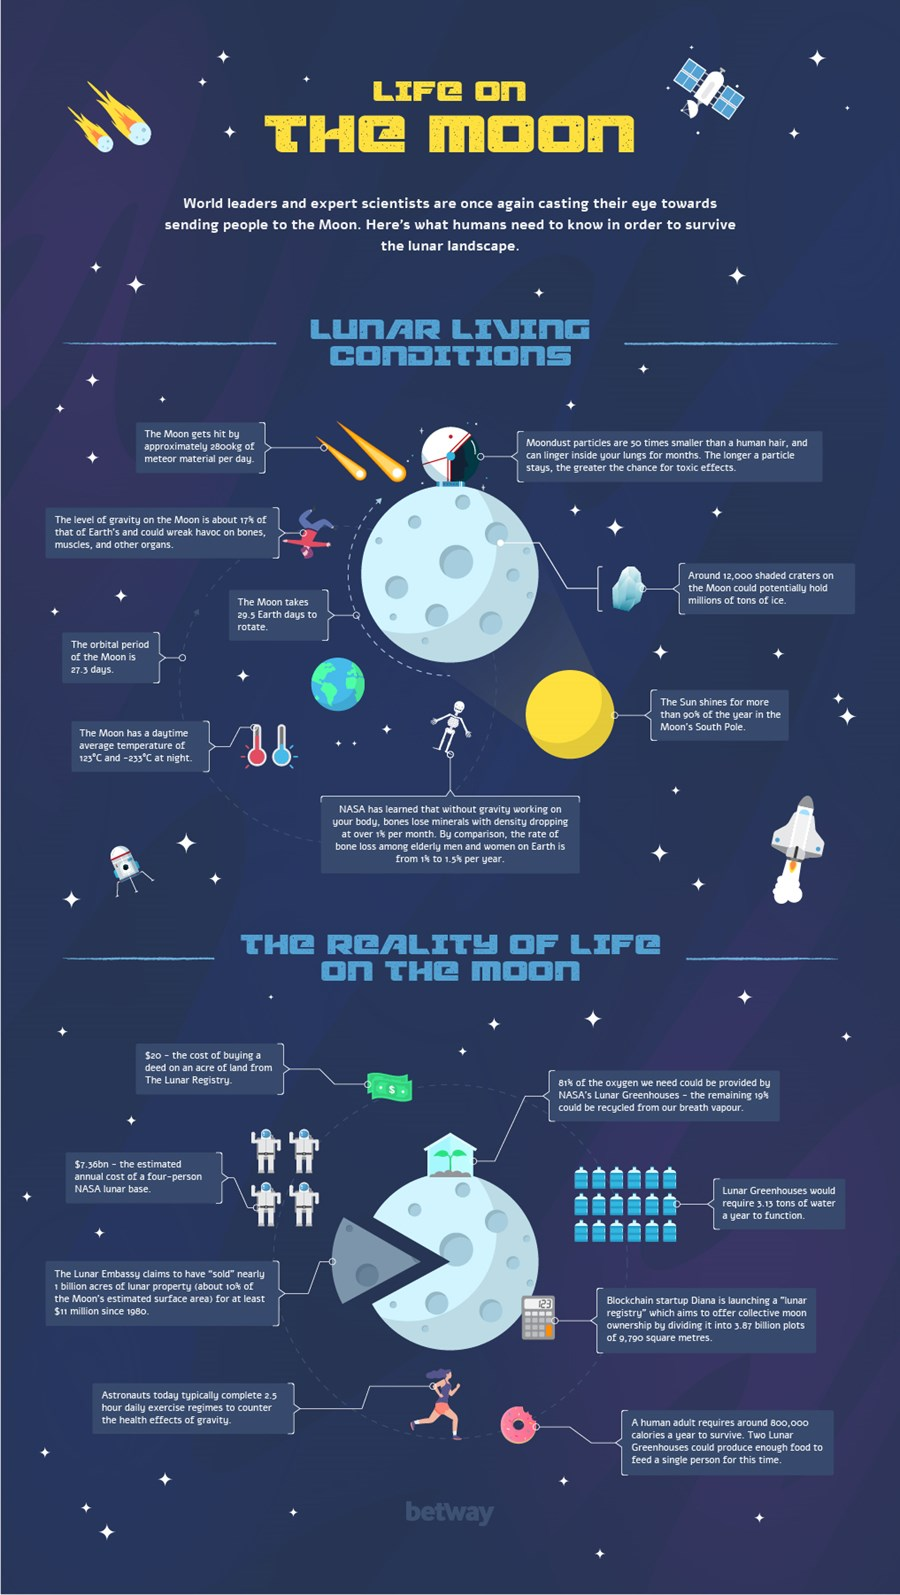 Life on the Moon Infographic